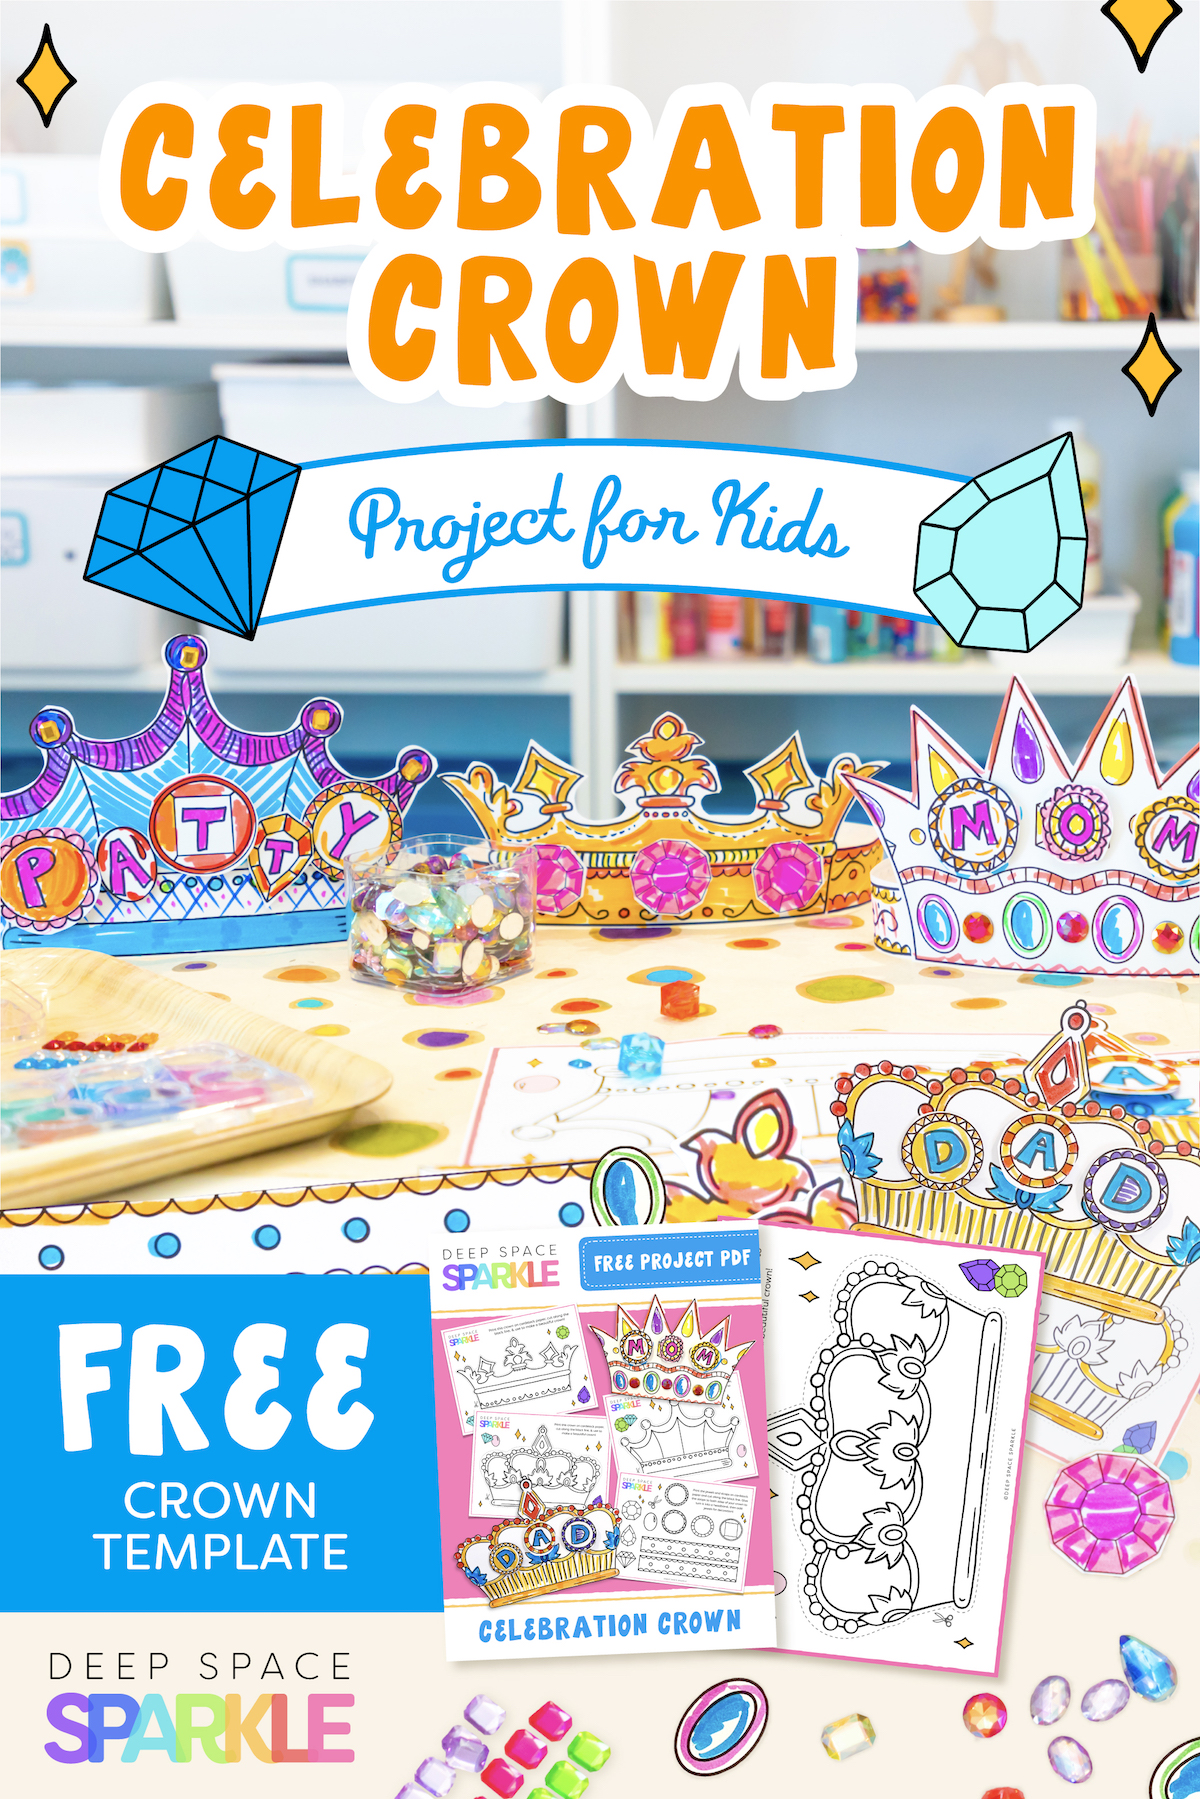 celebration day queen for a day art project for kids with miss patty and free download